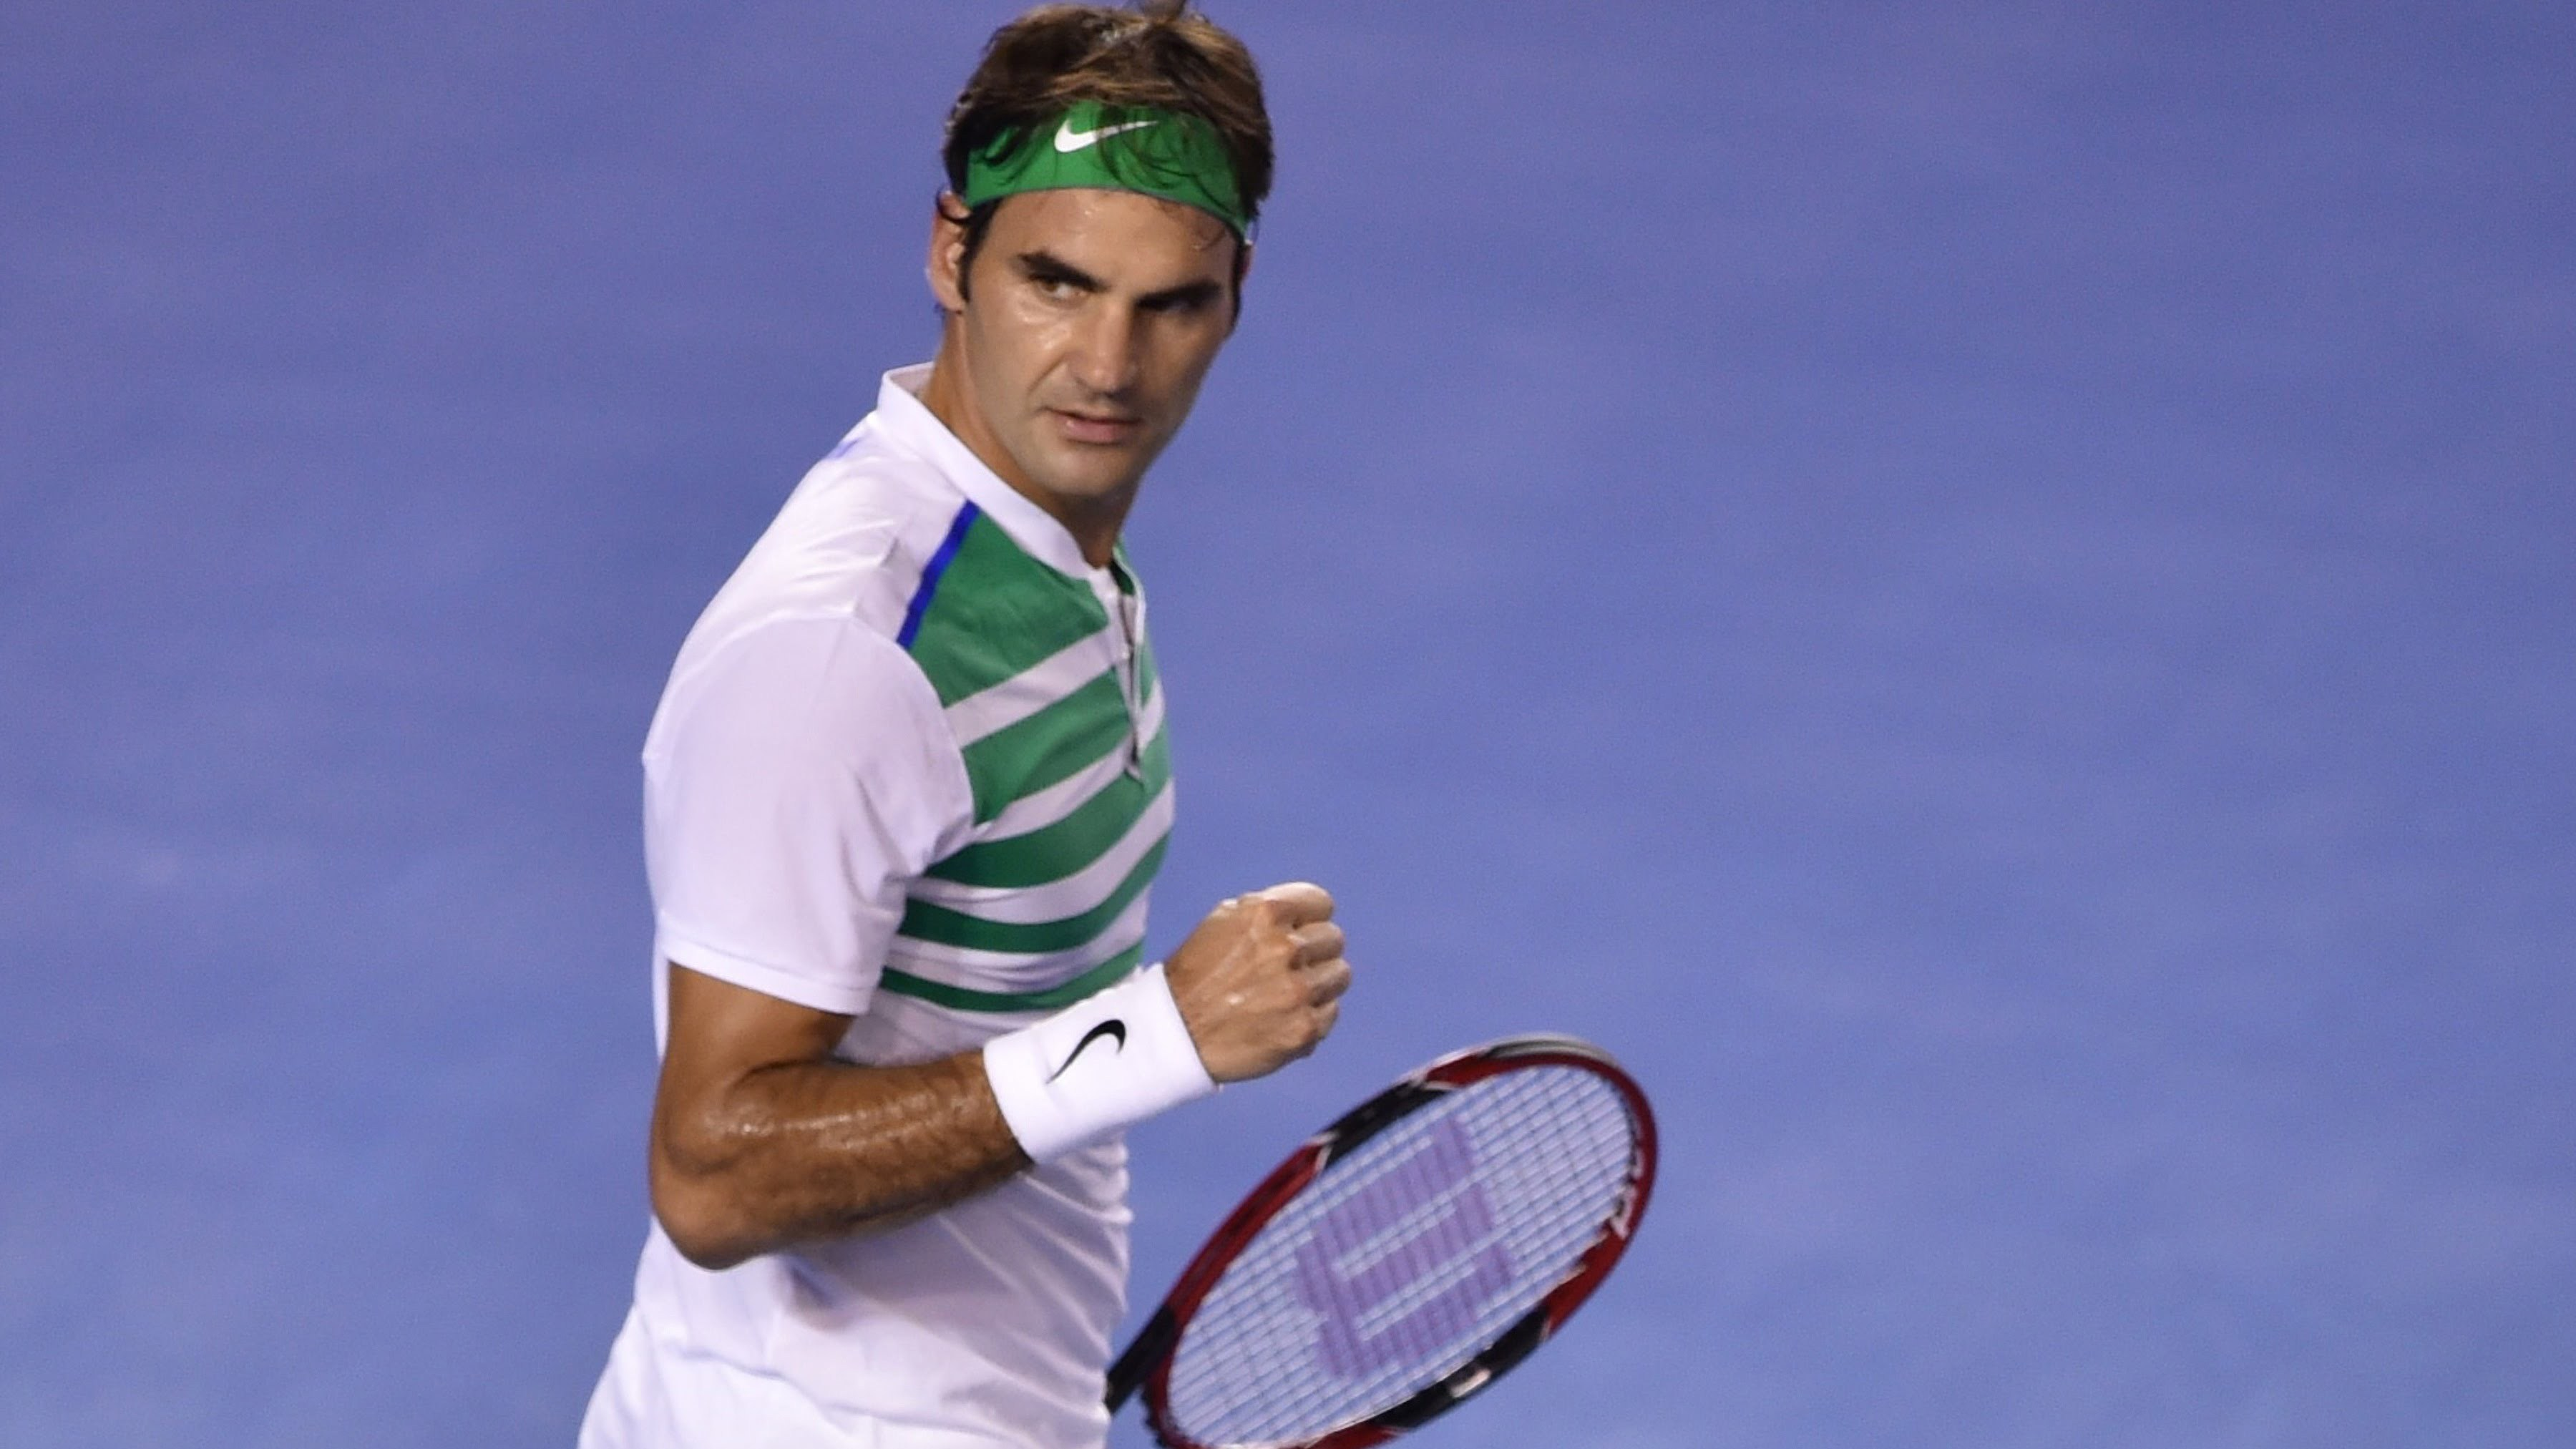 Roger Federer Wallpape...